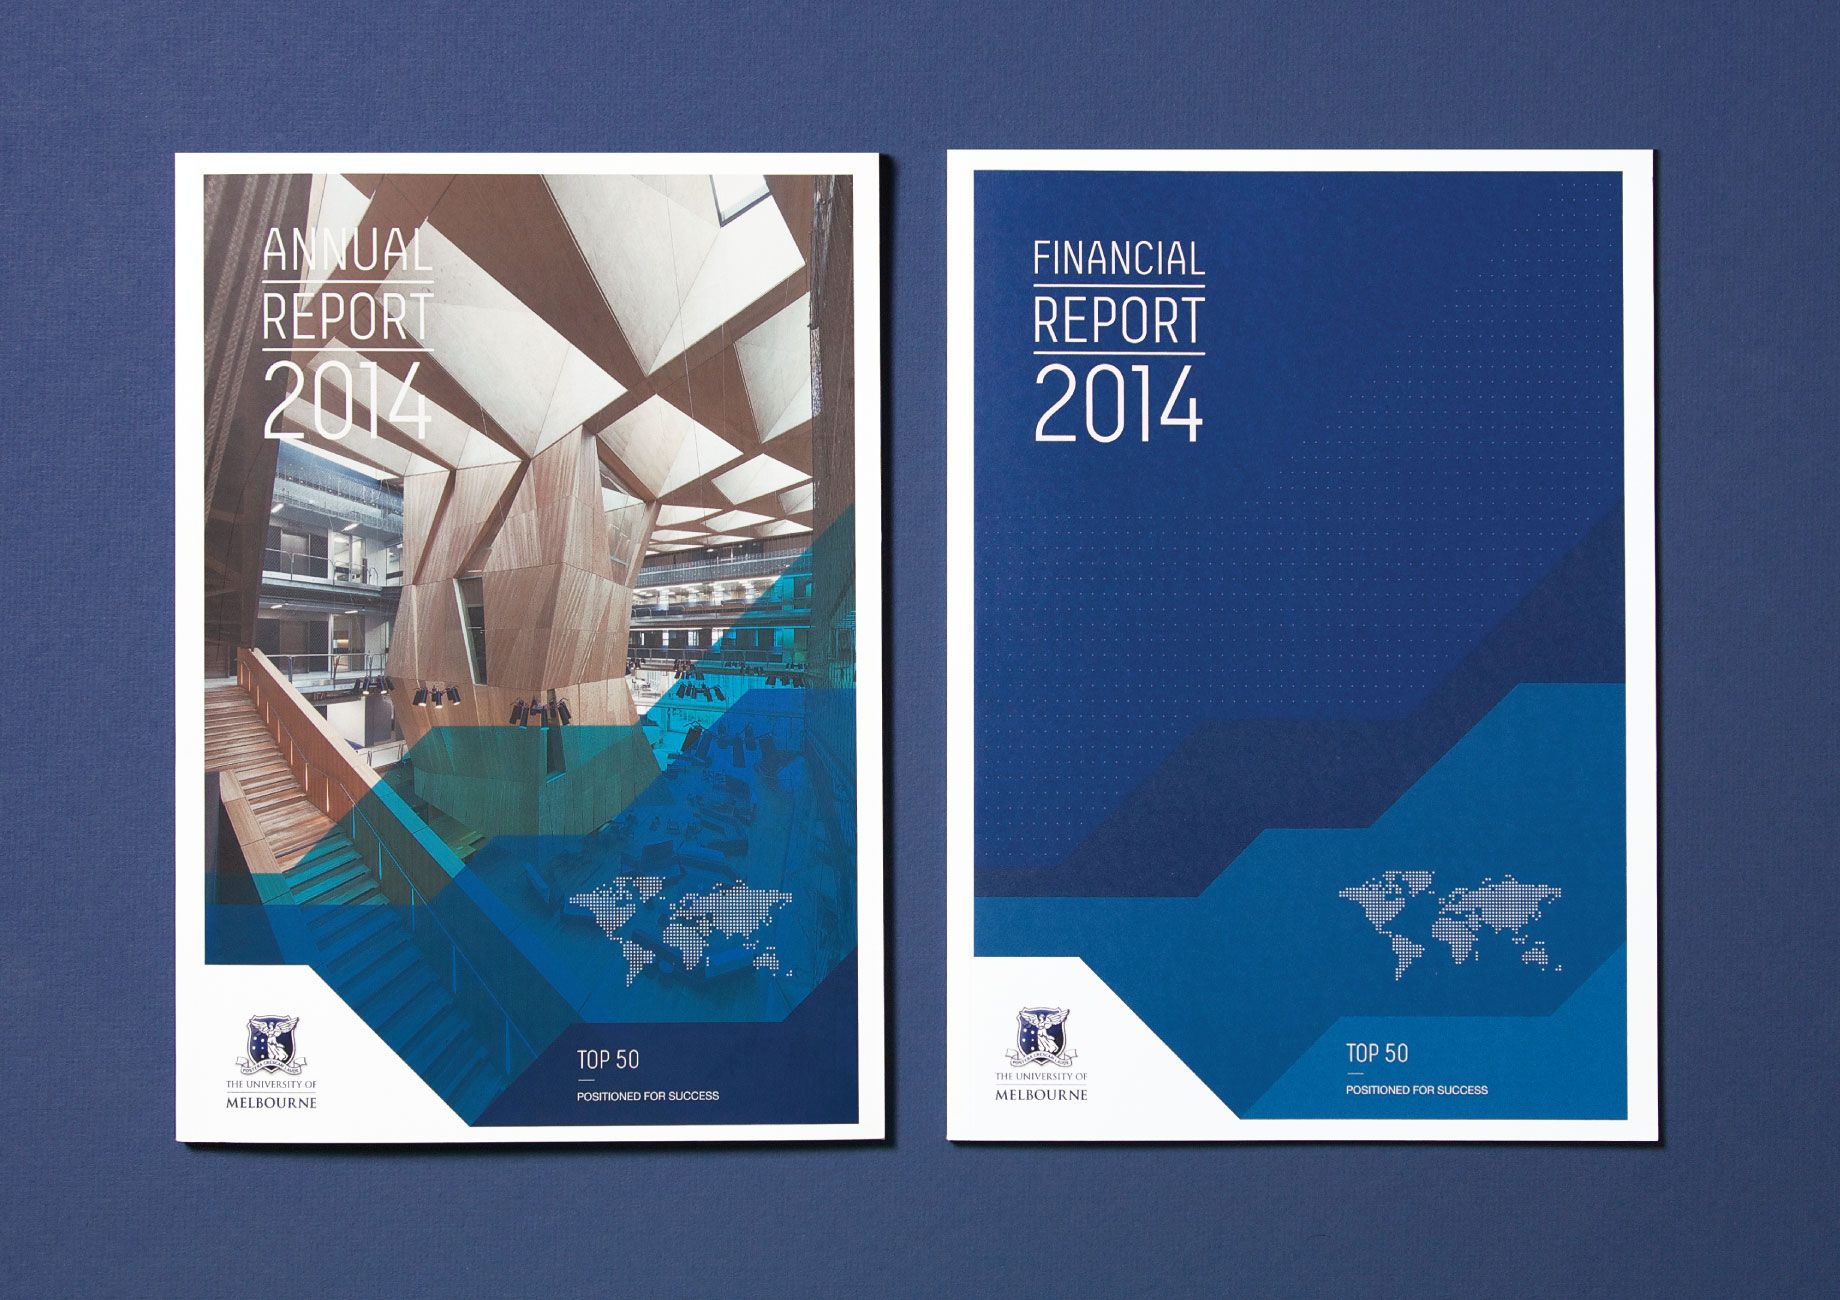 this annual report makes great use of color and geometry for a clean